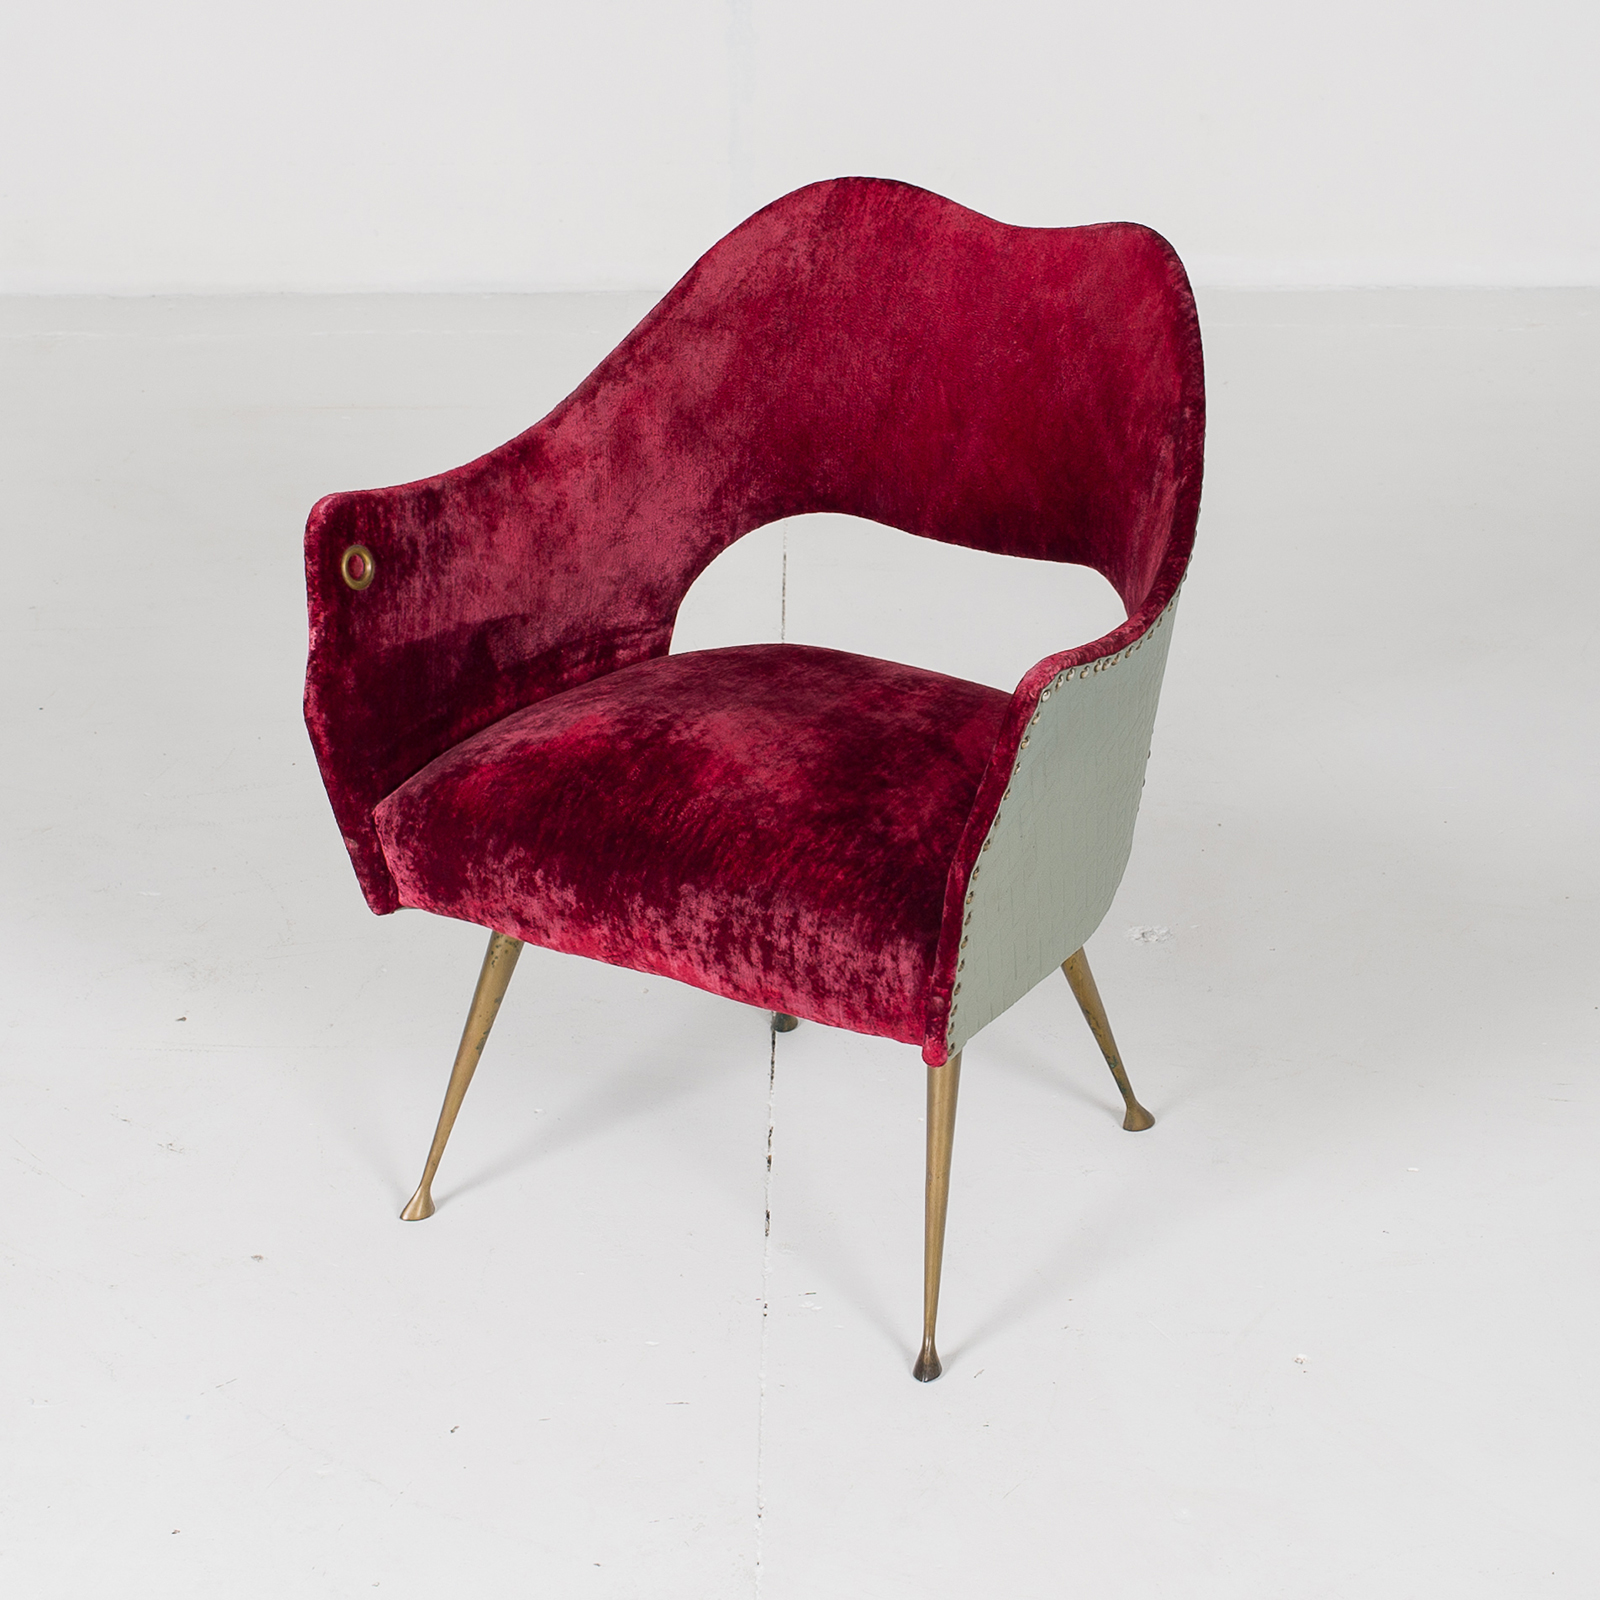 Armchair By Gio Ponti For Isa Bergamo In Burgundy Velvet ,1950s, Italy High Res